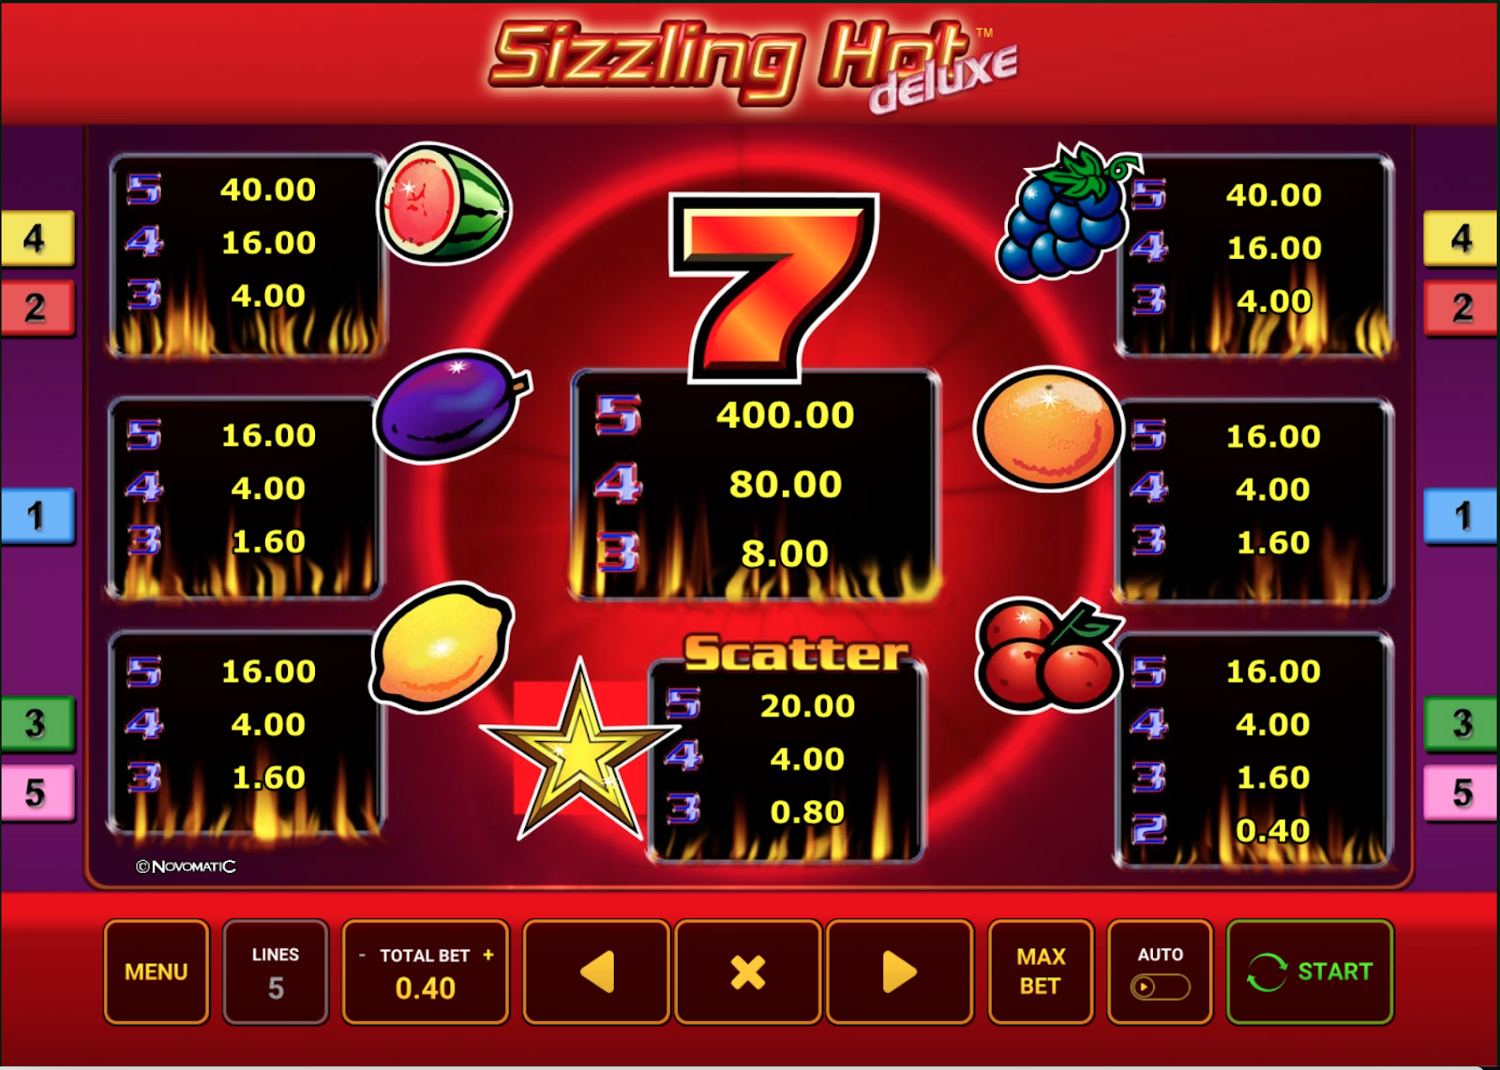 Paytable of Sizzling Hot Deluxe slot